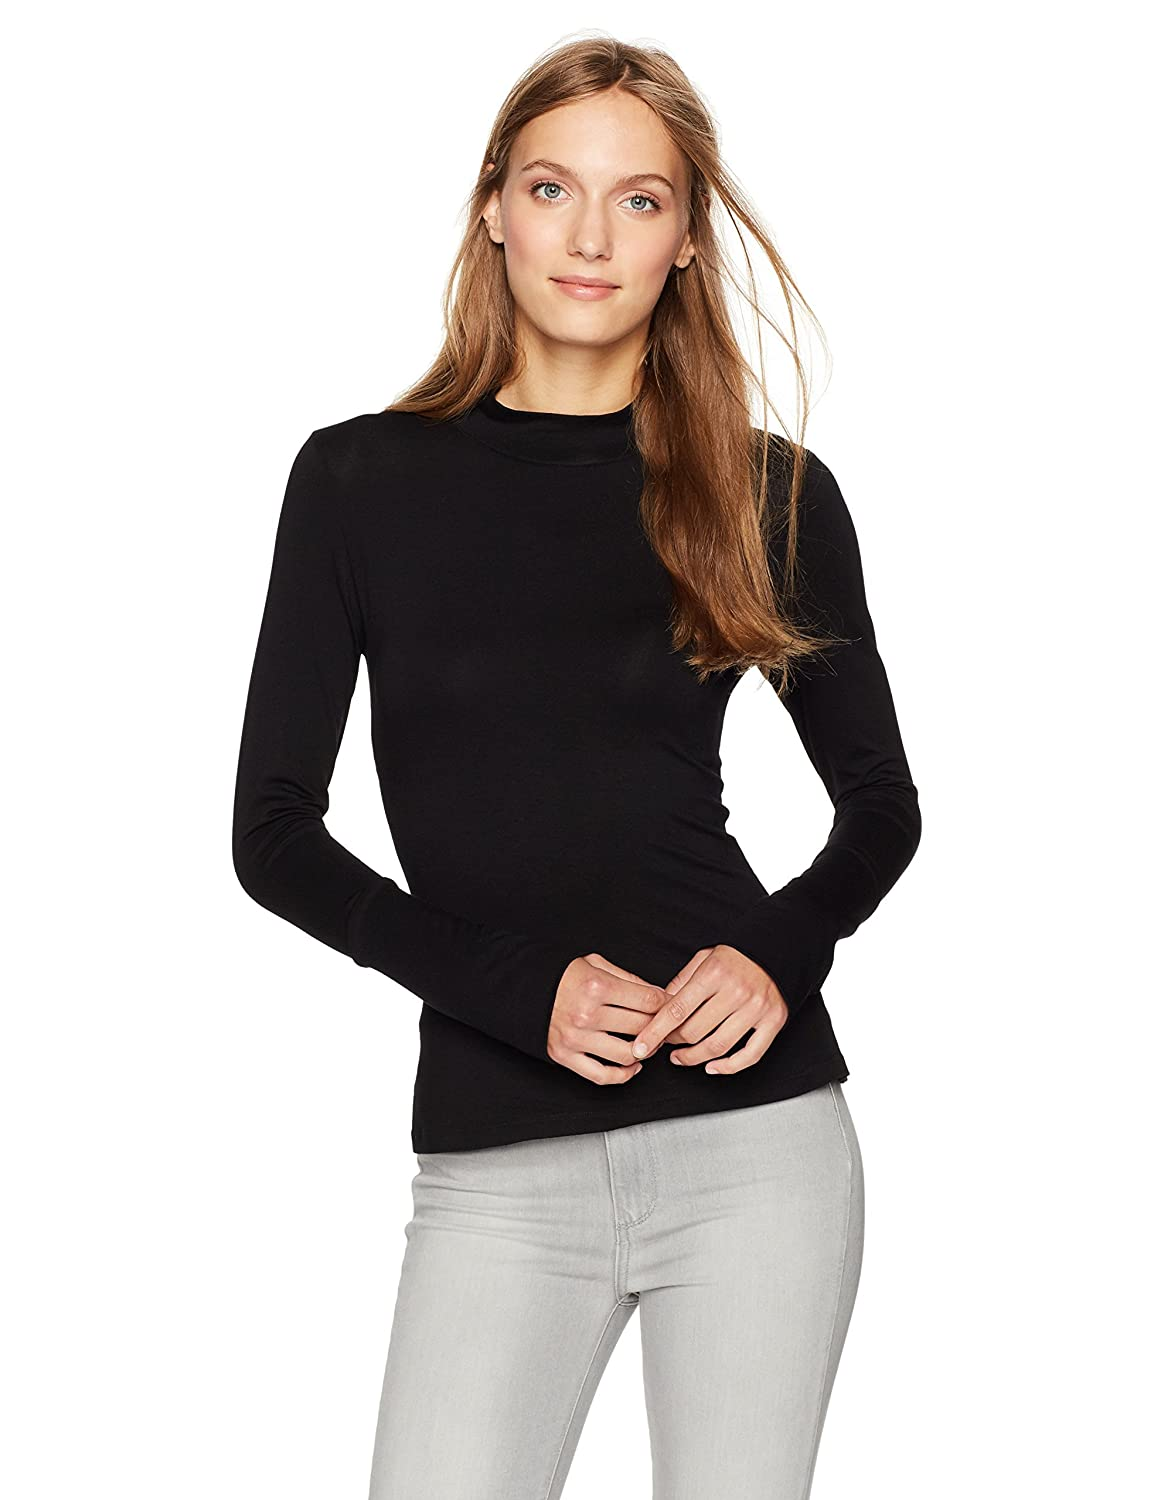 d49056f136229 Extra Long Sleeve Shirts Womens - Cotswold Hire